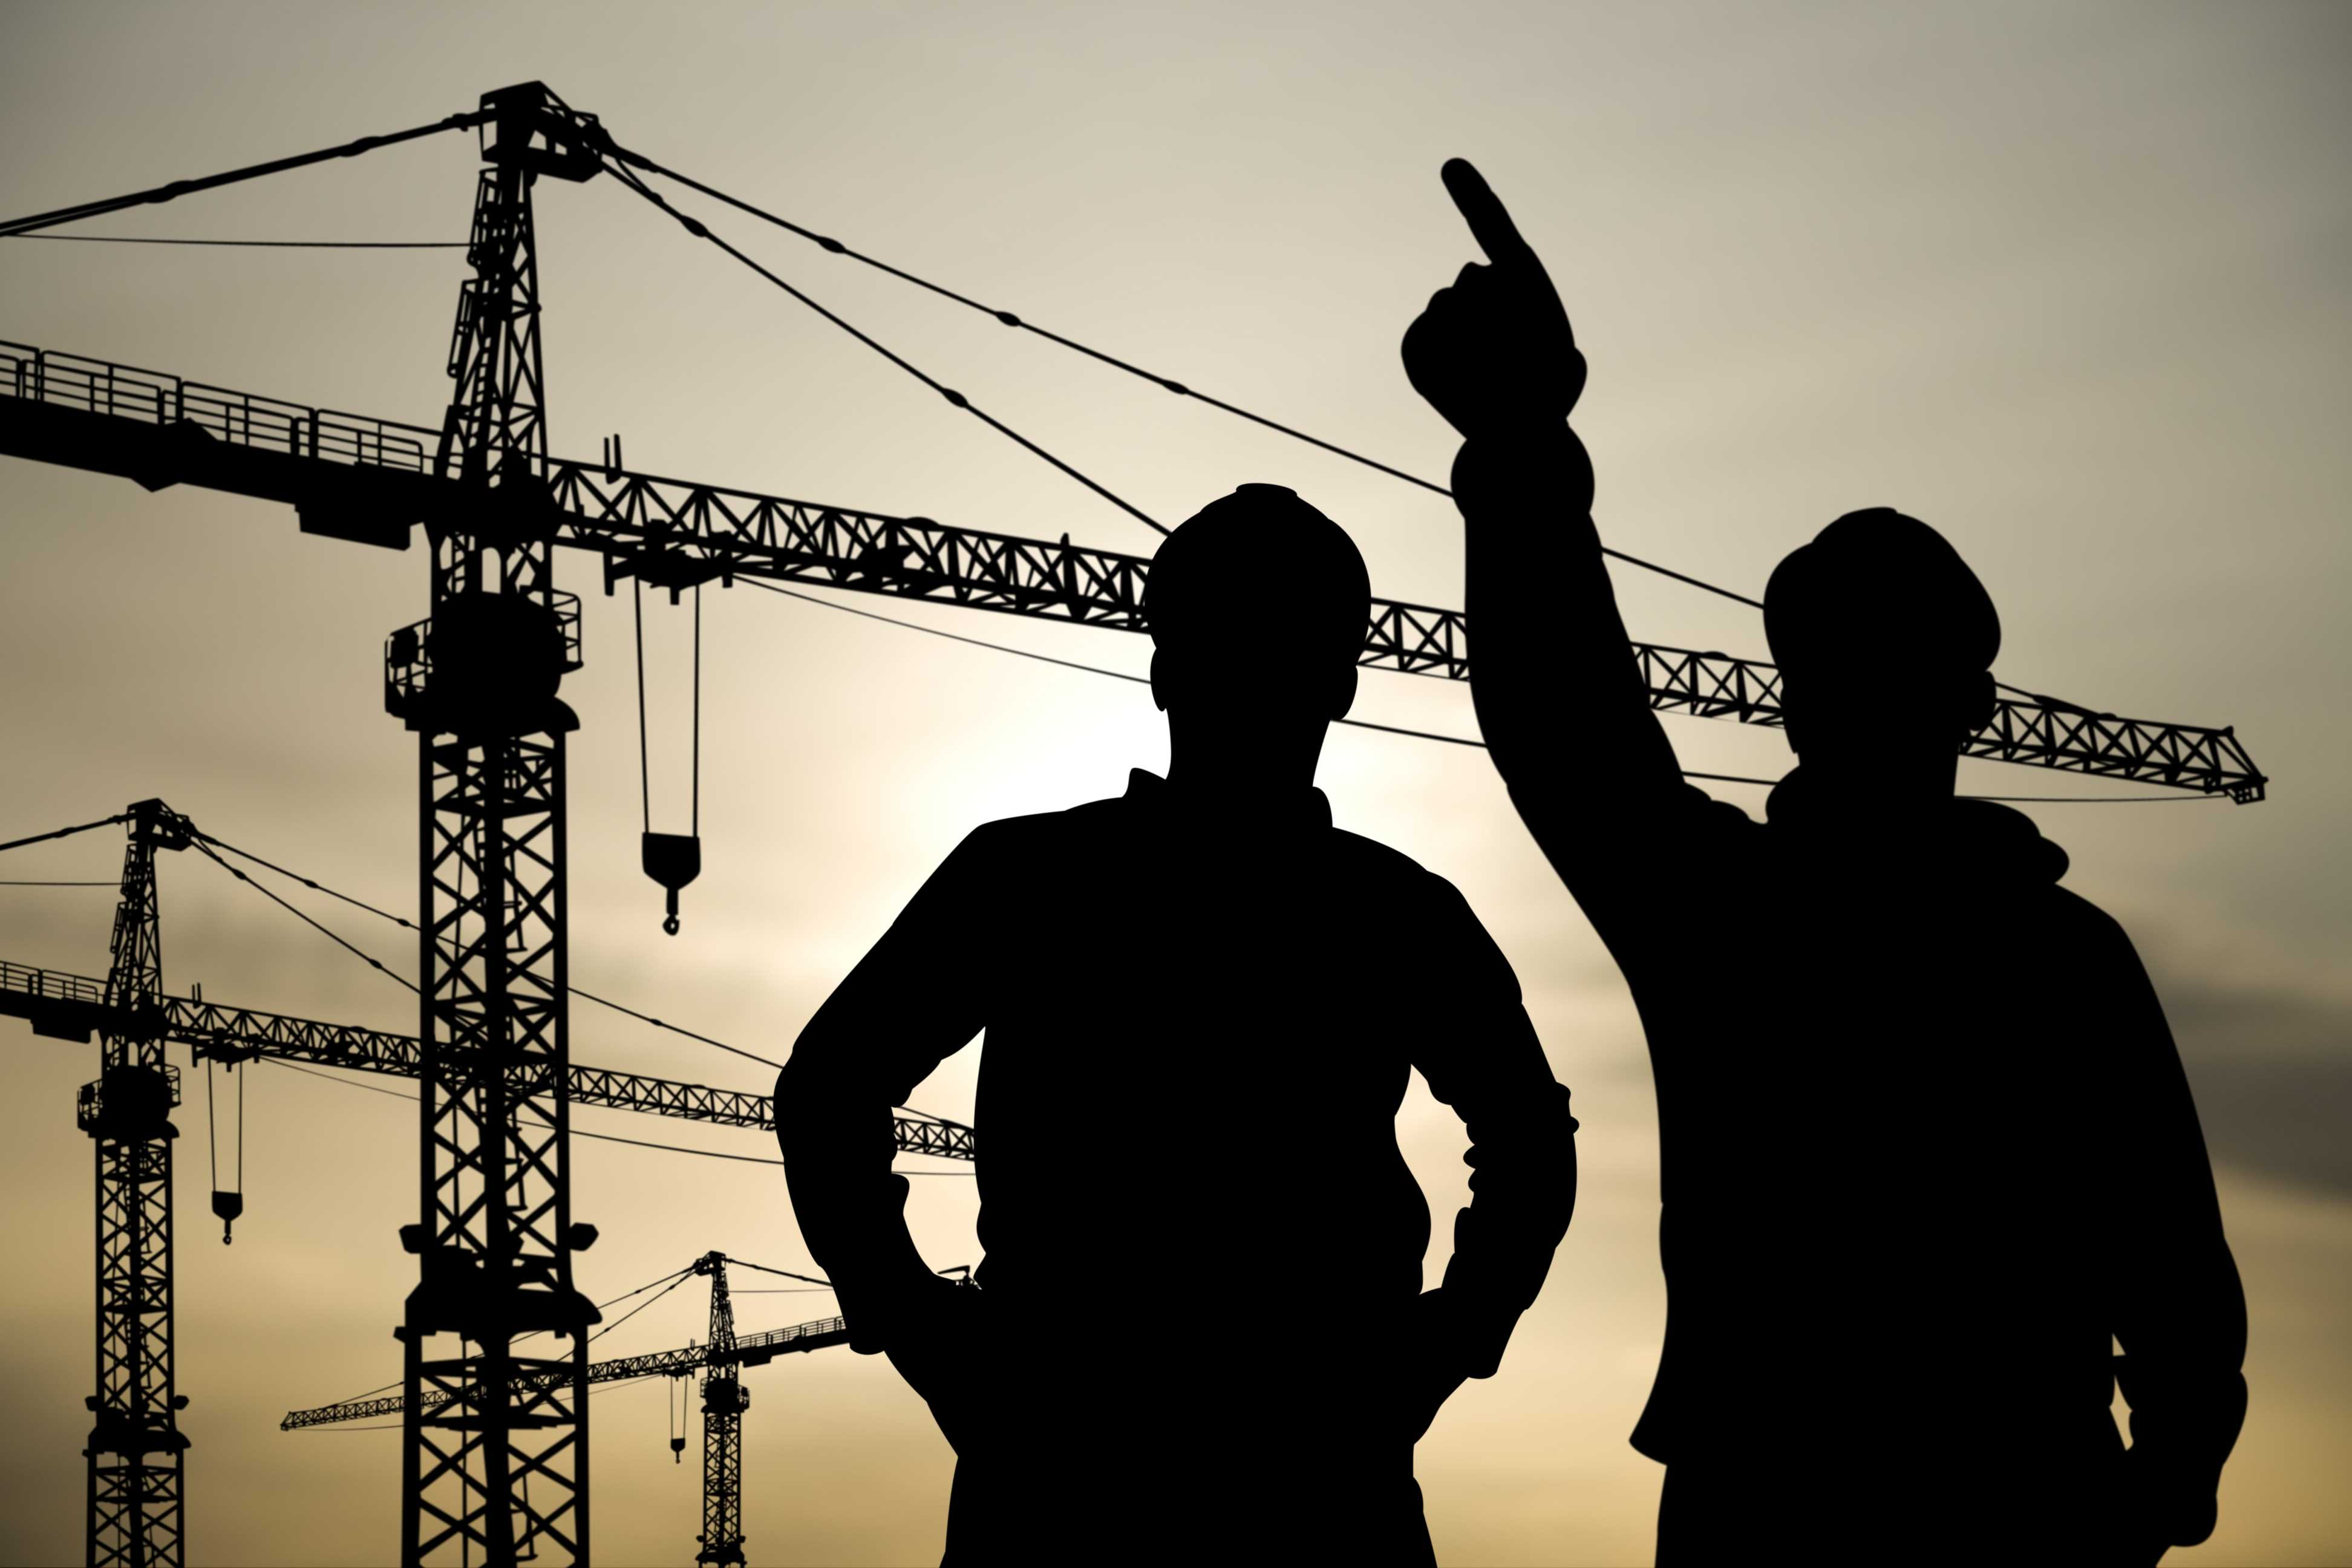 Construction underwriting tightens as insurers eye project losses